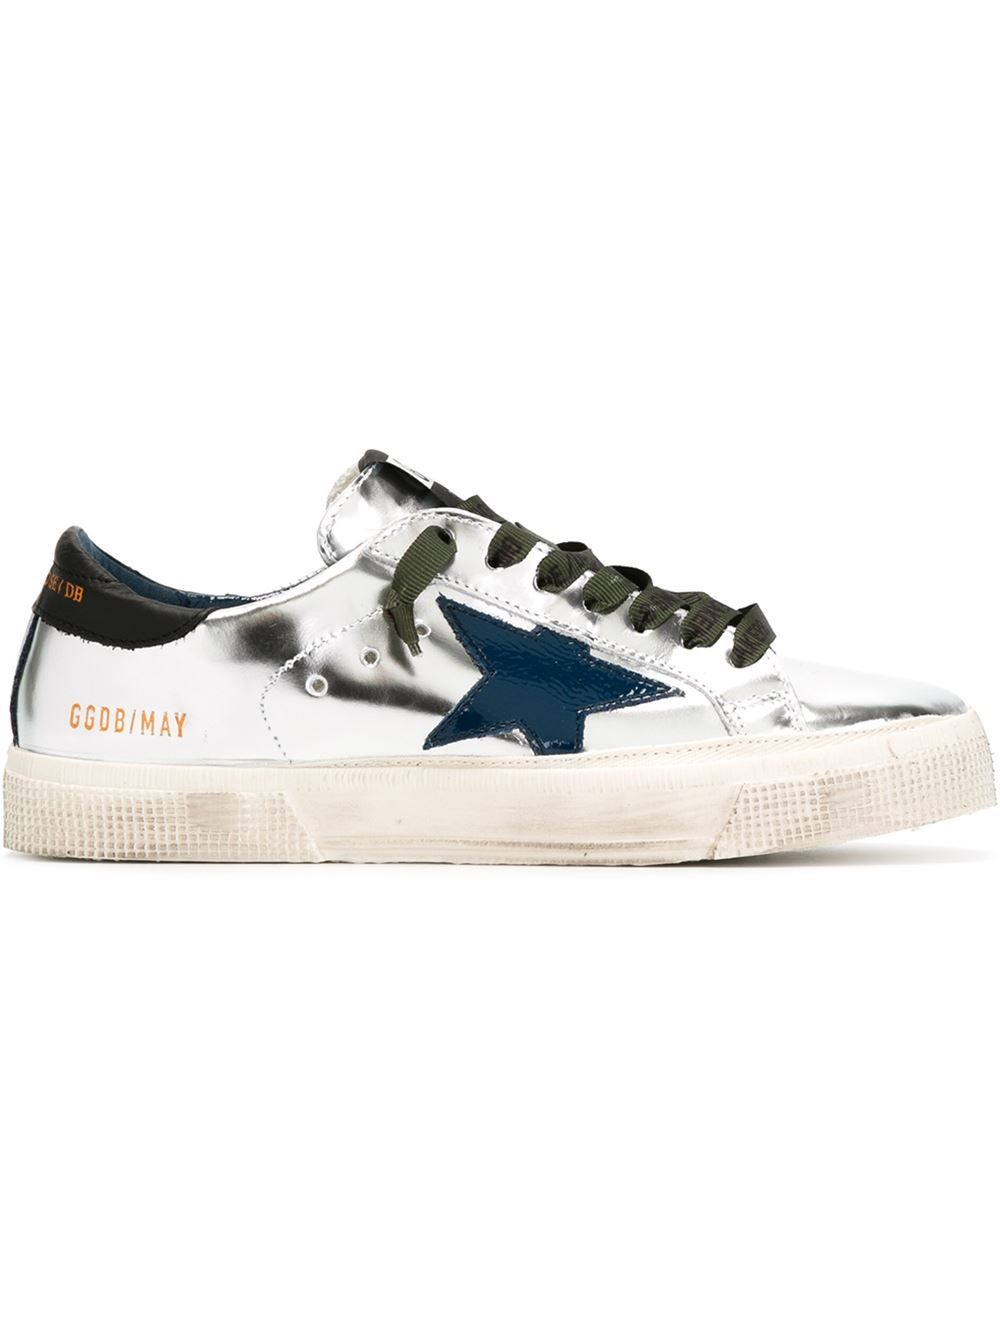 0e107ca133f9 Golden Goose Deluxe Brand  May  sneakers